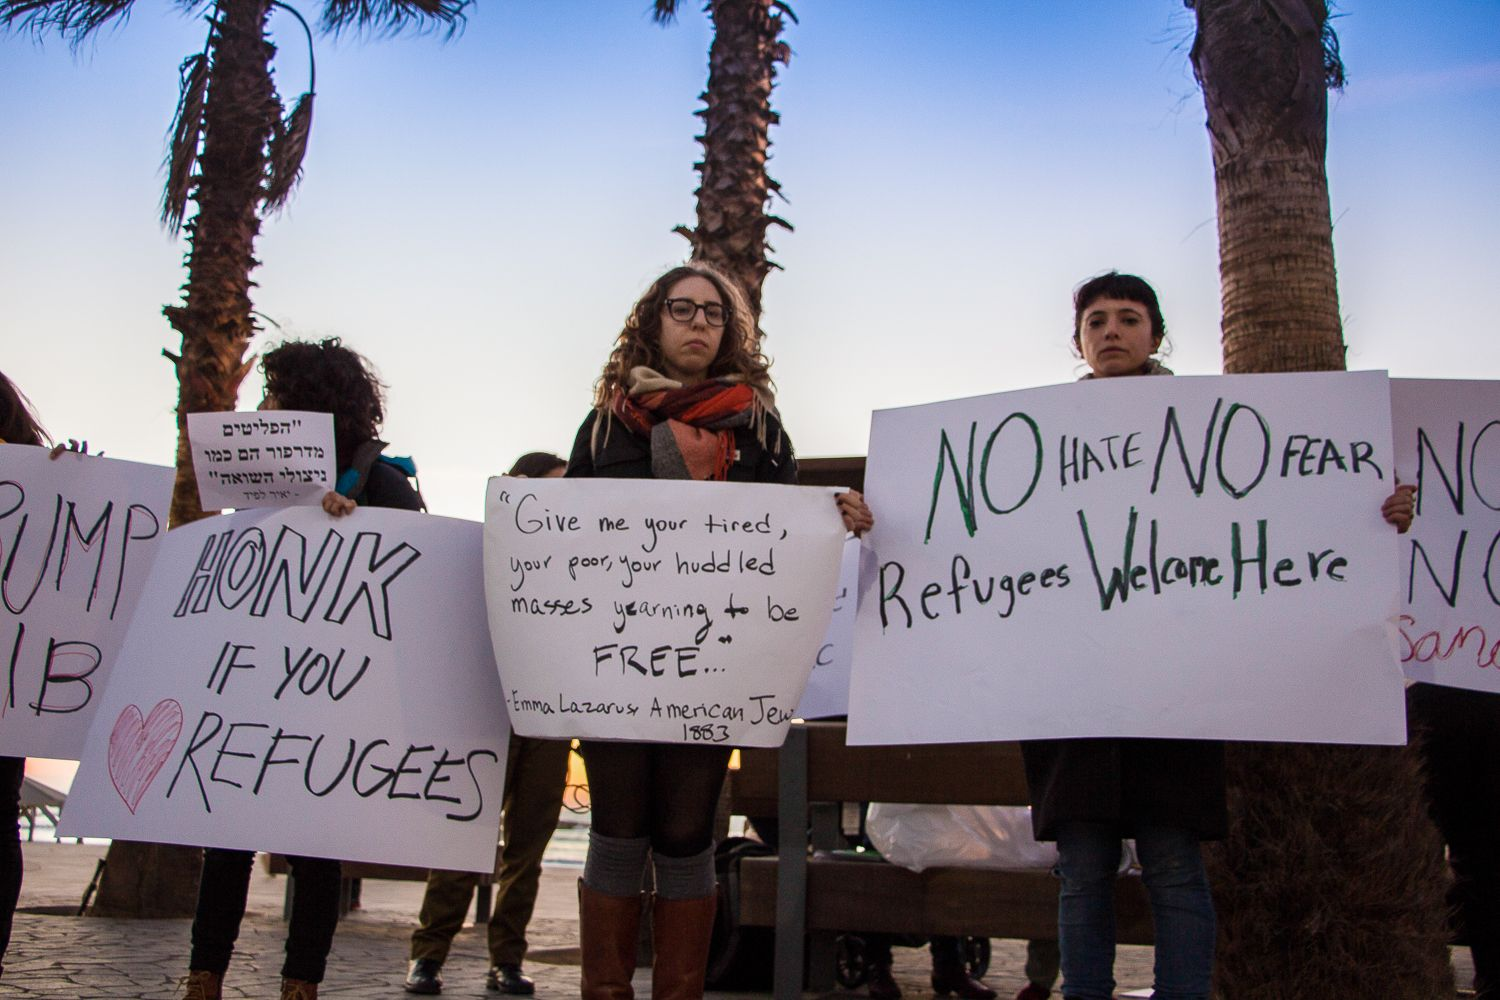 American-Israelis and African asylum seekers protest US and Israeli immigration policies at the US embassy in Tel Aviv on January 29, 2017